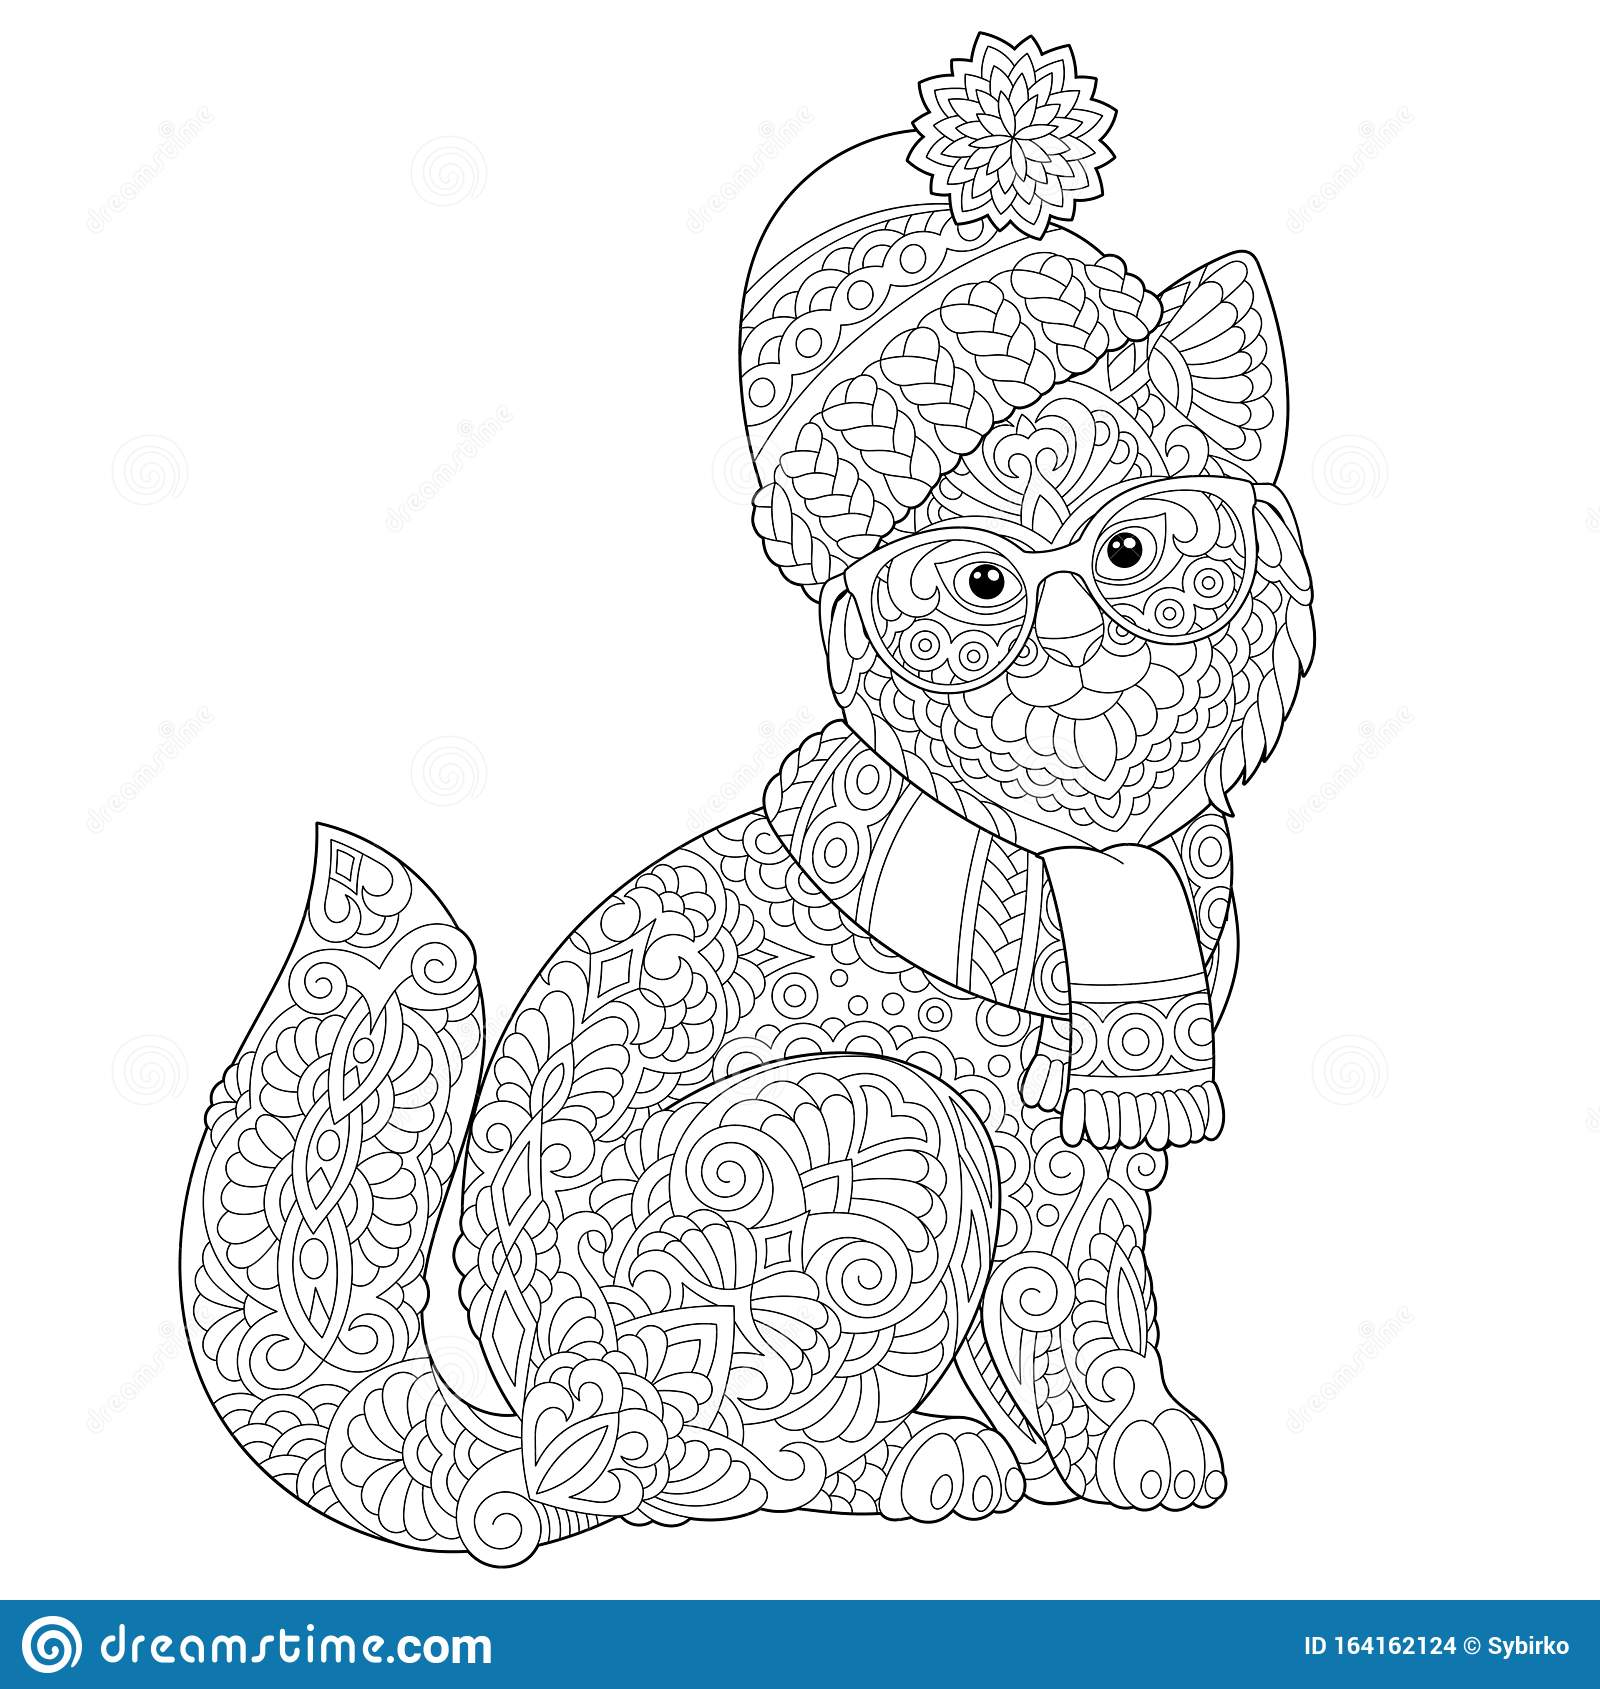 Zentangle Winter Cat Coloring Page Stock Vector Illustration Of Decorative Classic 164162124